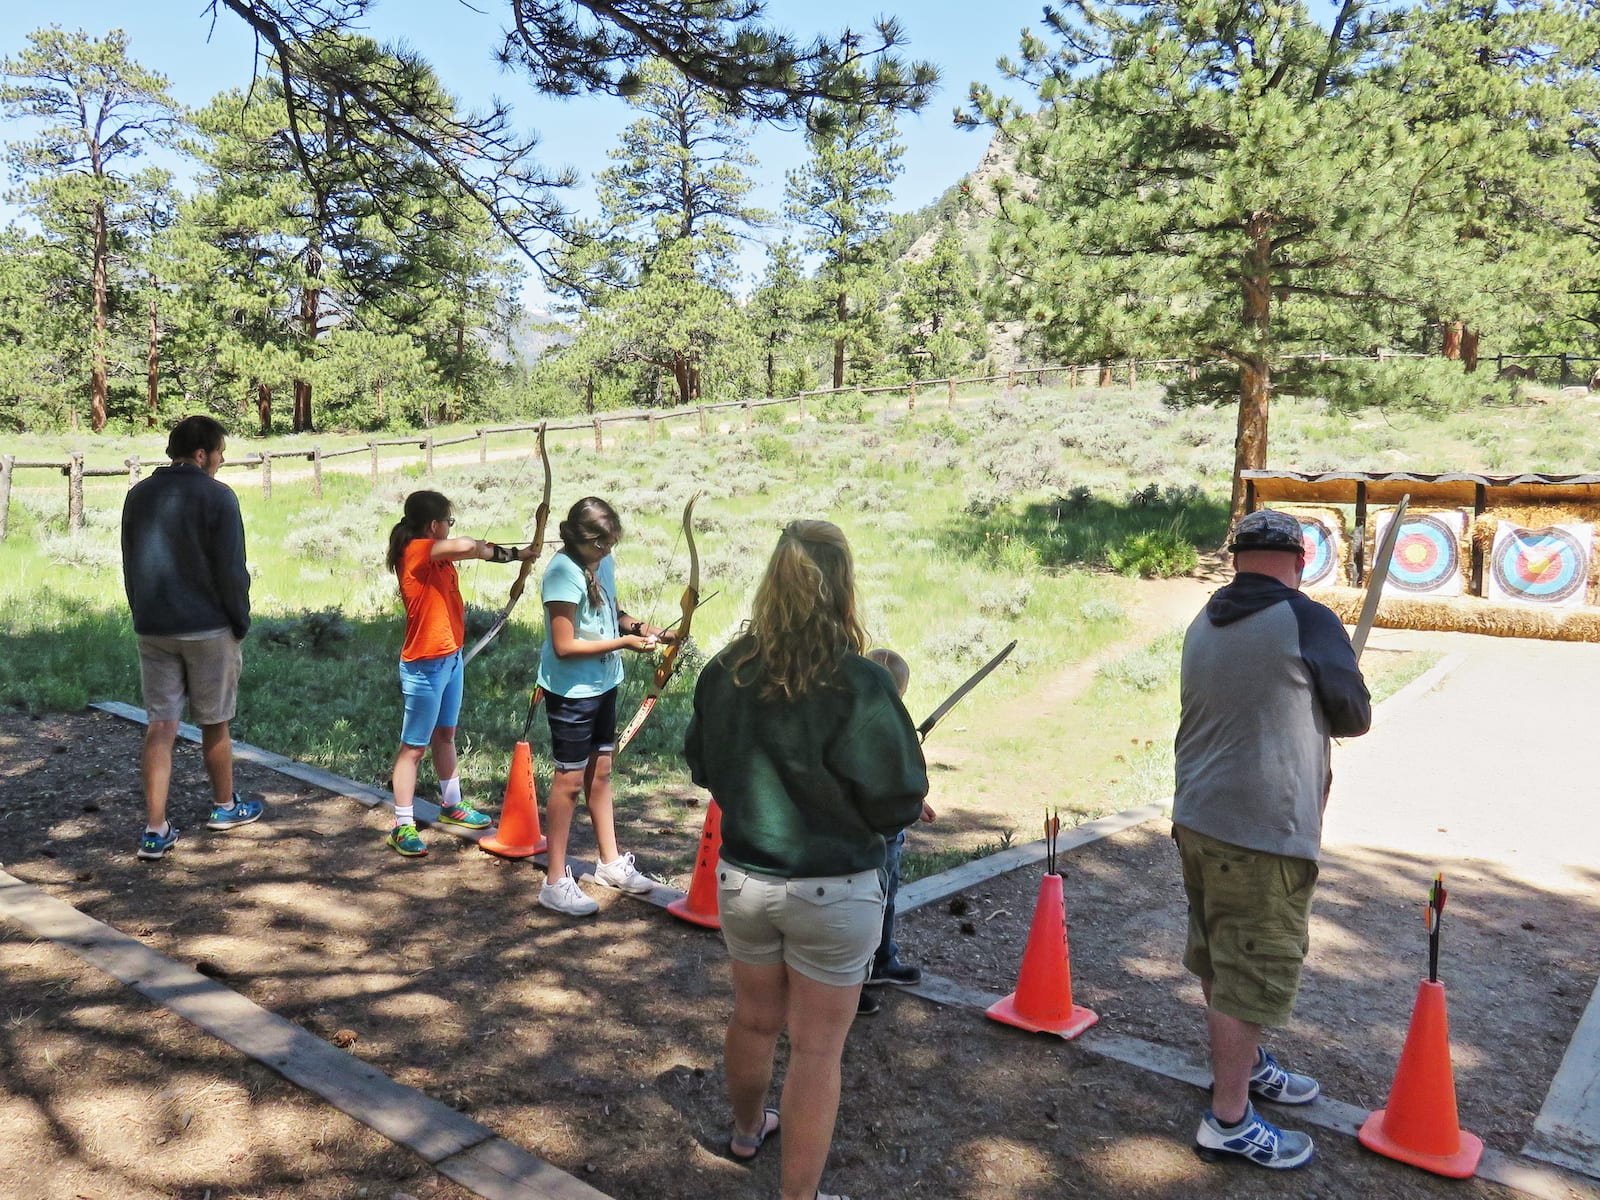 Shooting archery at YMCA of the Rockies, CO